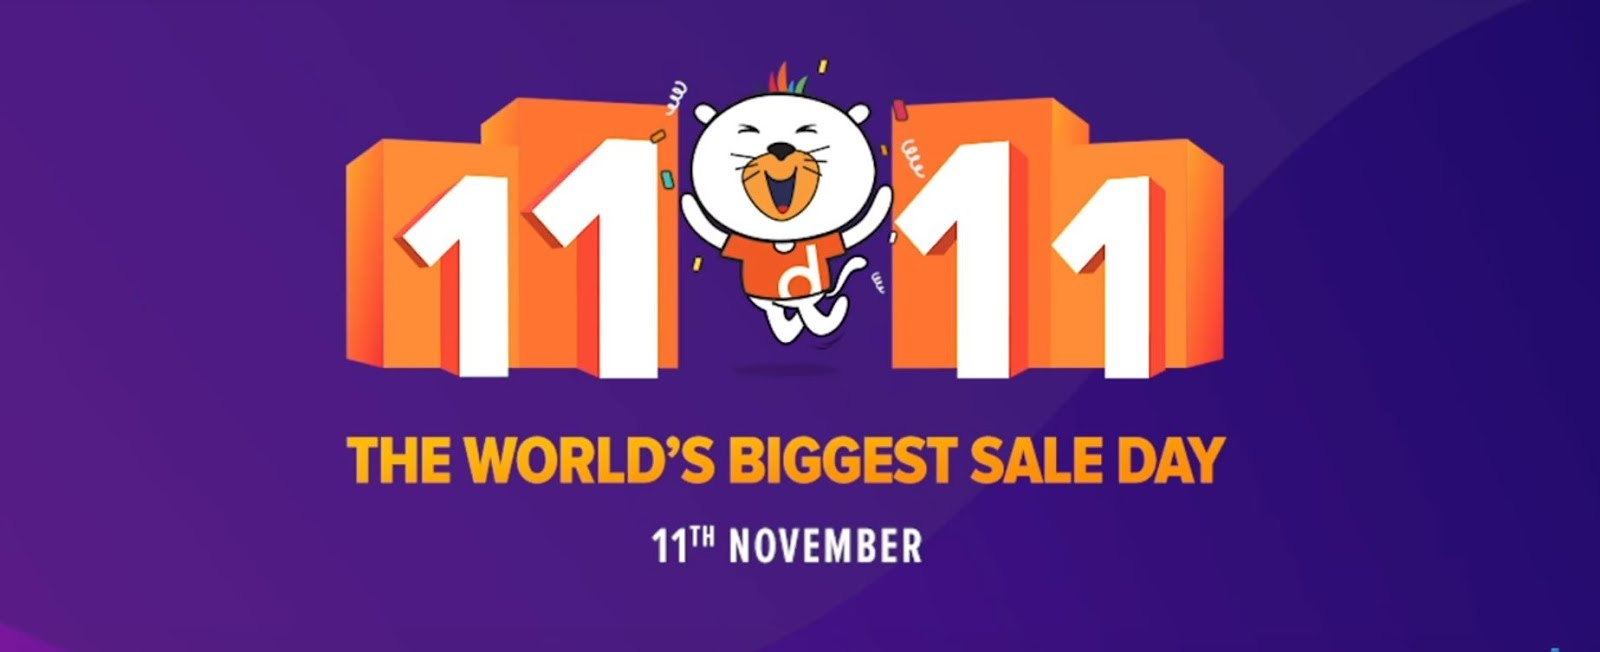 Daraz Announces 11.11, World's Biggest Sale Day,Coming To Pakistan For The First Time On November 11th